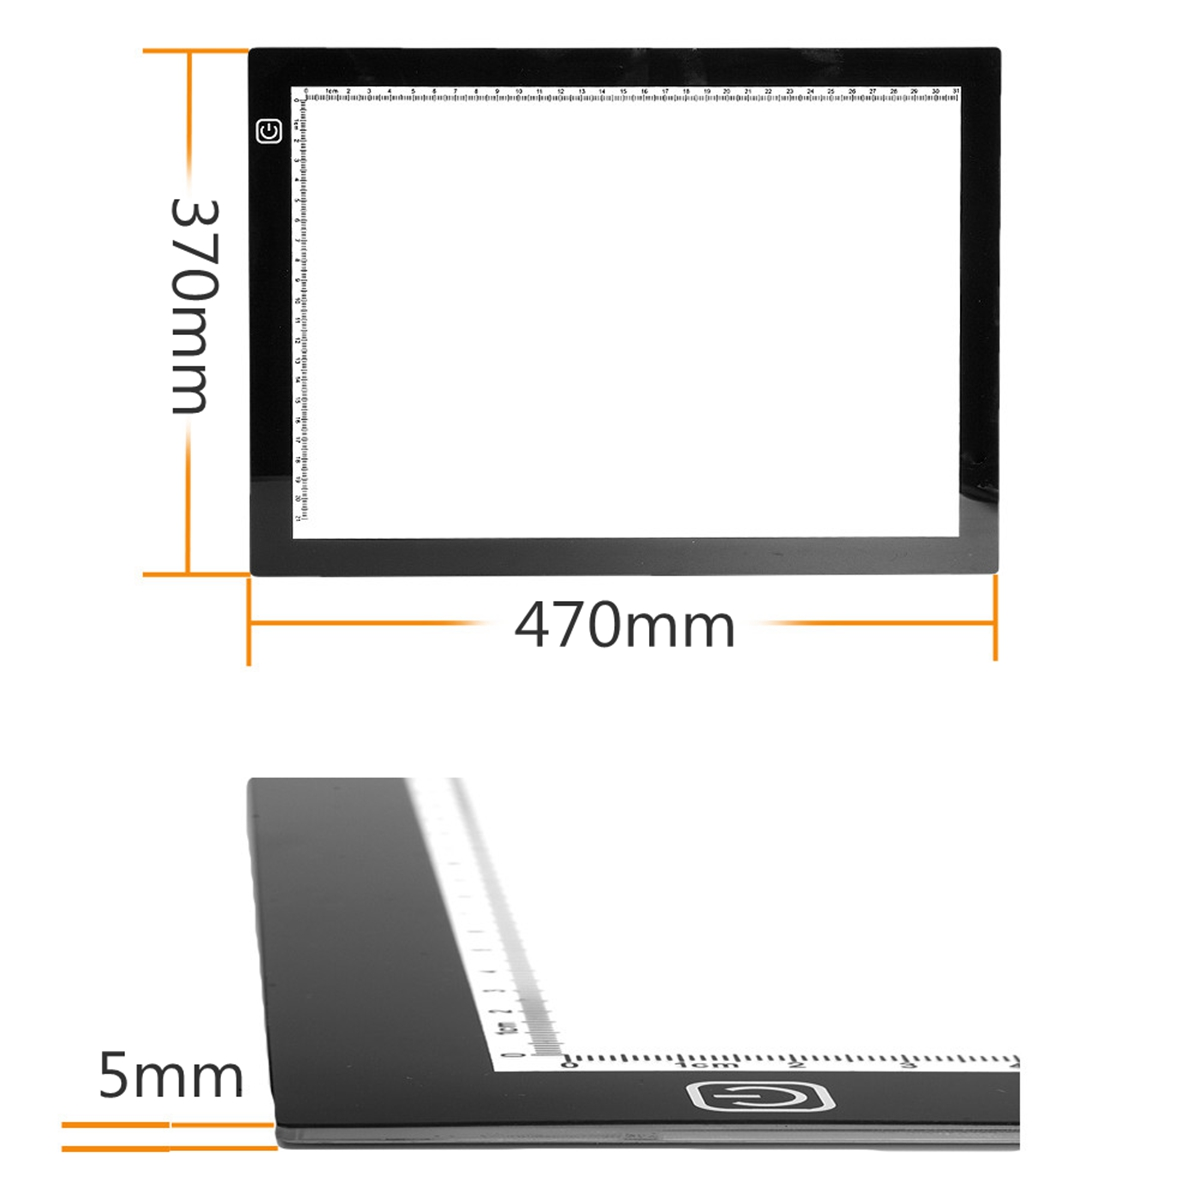 Ultra Thin A3 LED Tracing Board Drawing Writing Painting Light Box Art Craft Paint Pad Tracing Board Copy Pads Drawing Tablet m way 35x23x0 52cm ultra thin pencil drawing table graphics tablet a4 led copy adjustable brightness tracing copyboard